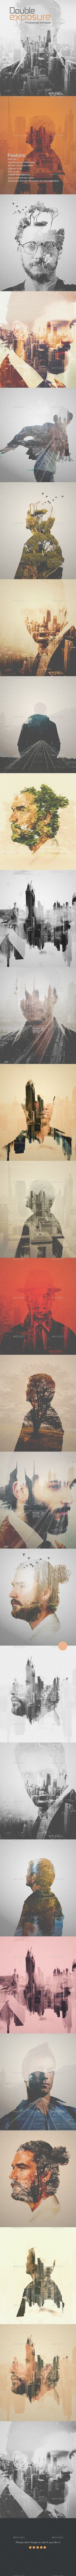 Double Exposure Photoshop template (Follow us www.pinterest.com/dantaque)